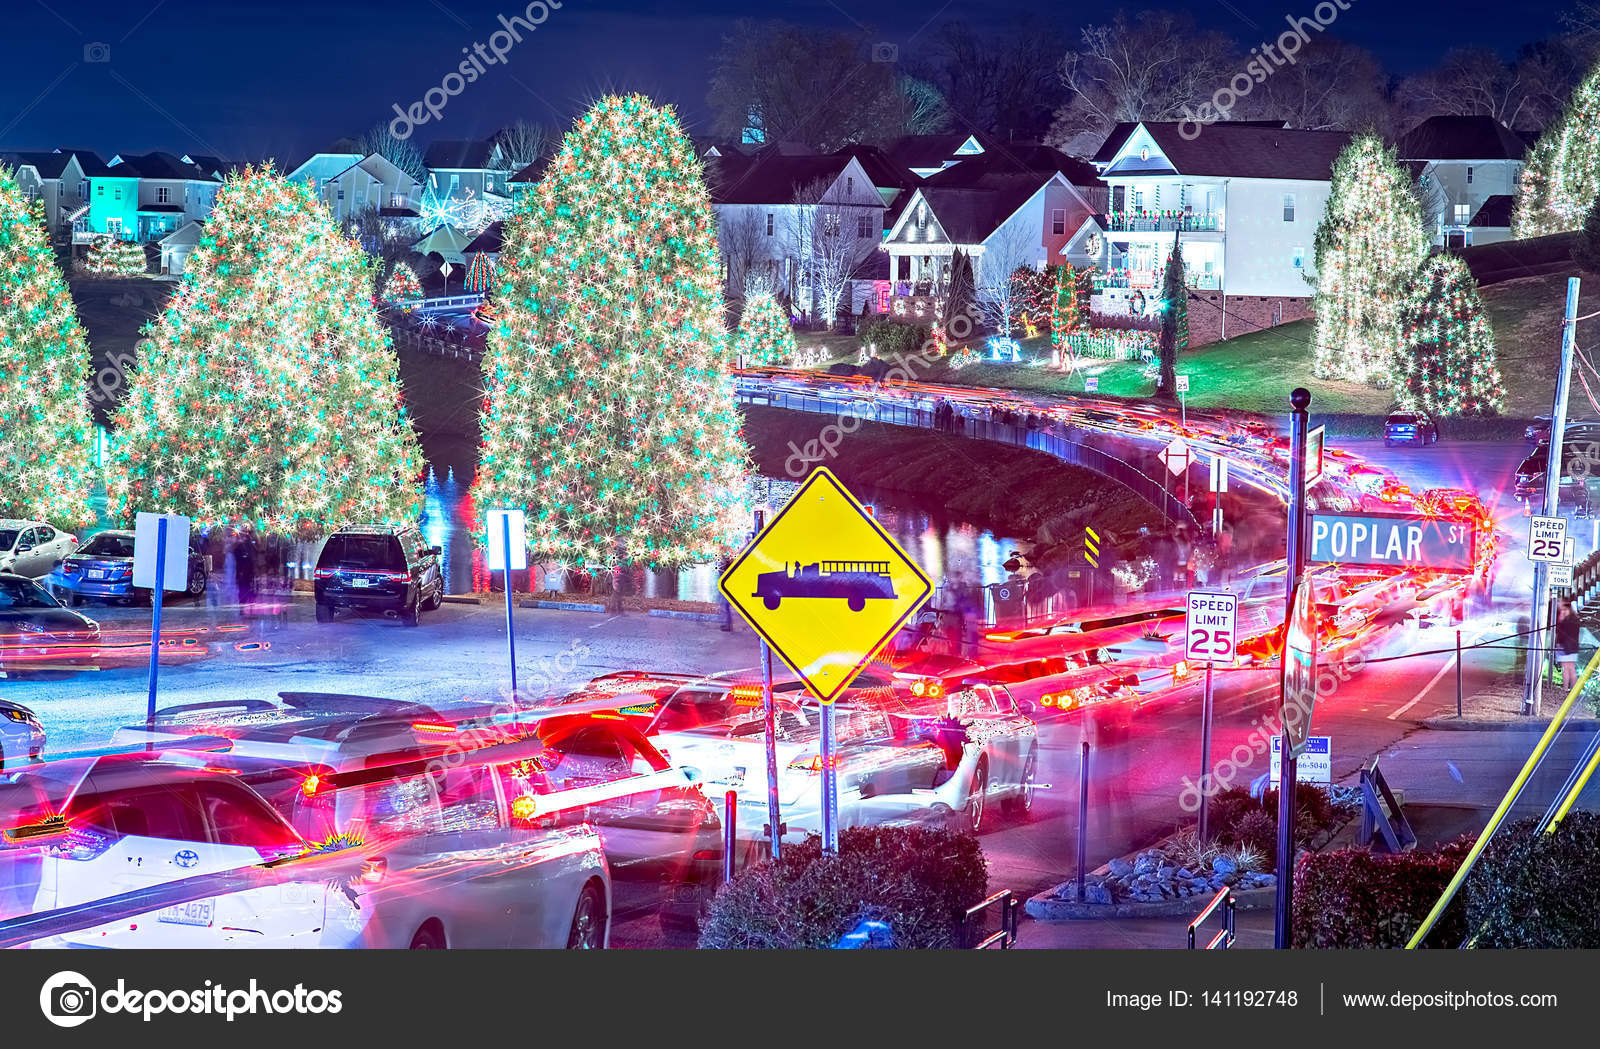 outdoor christmas decorations at christmas town usa stock photo - Christmas Town Decorations